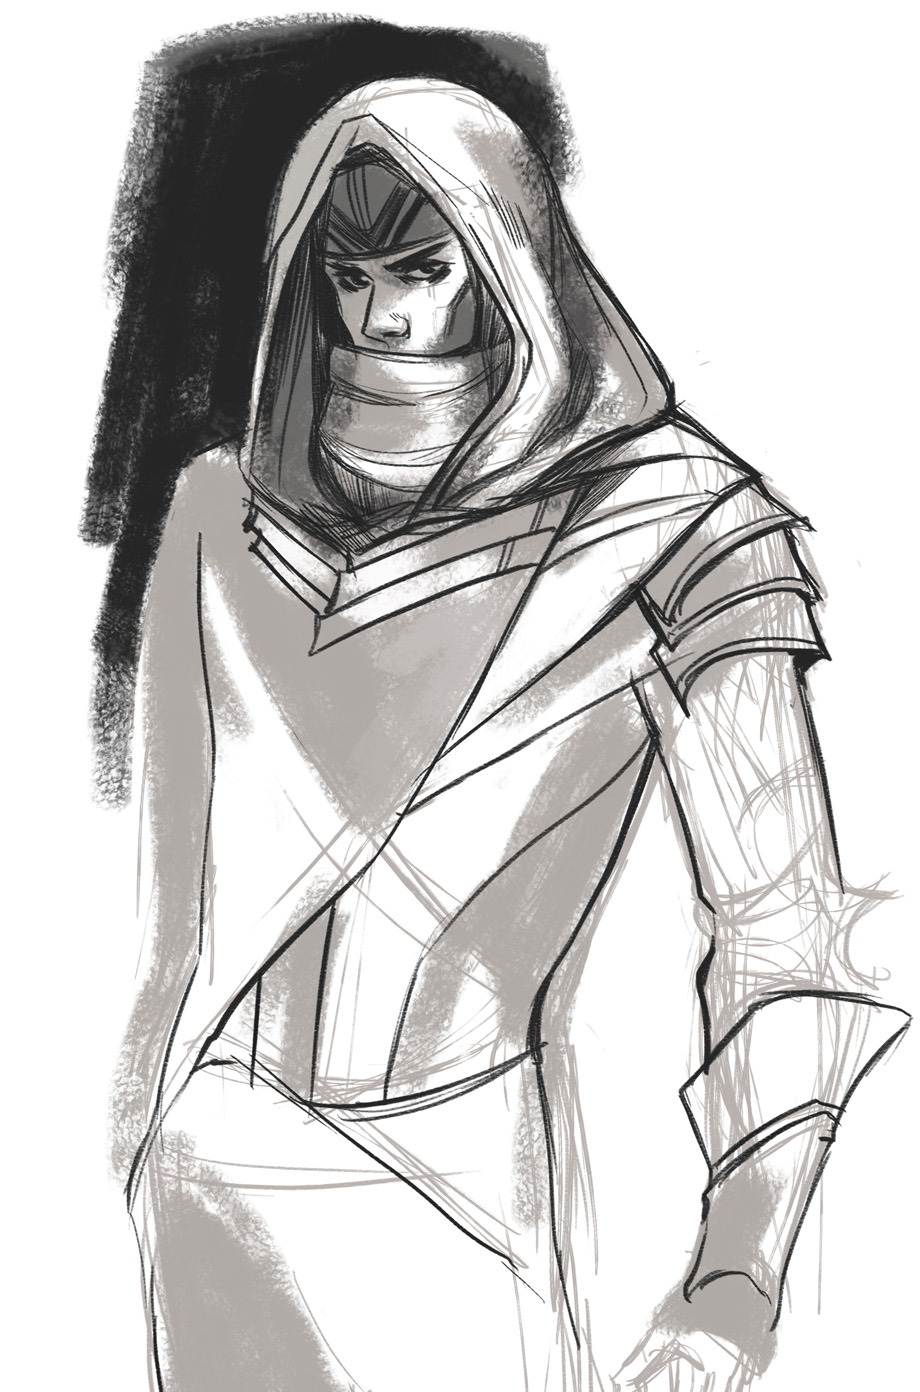 I can't really draw hoods so I thought I'd practice a bit. As you can see I'm pretty bad (hopefully that will change lol). It was supposed to be someone else but it just turned into random doodling. I need to practice drawing original stuff anyways so this is a start?  If you guys have any tips as to how I can improve and/or just boosting creativity, feel free to drop me a message :)